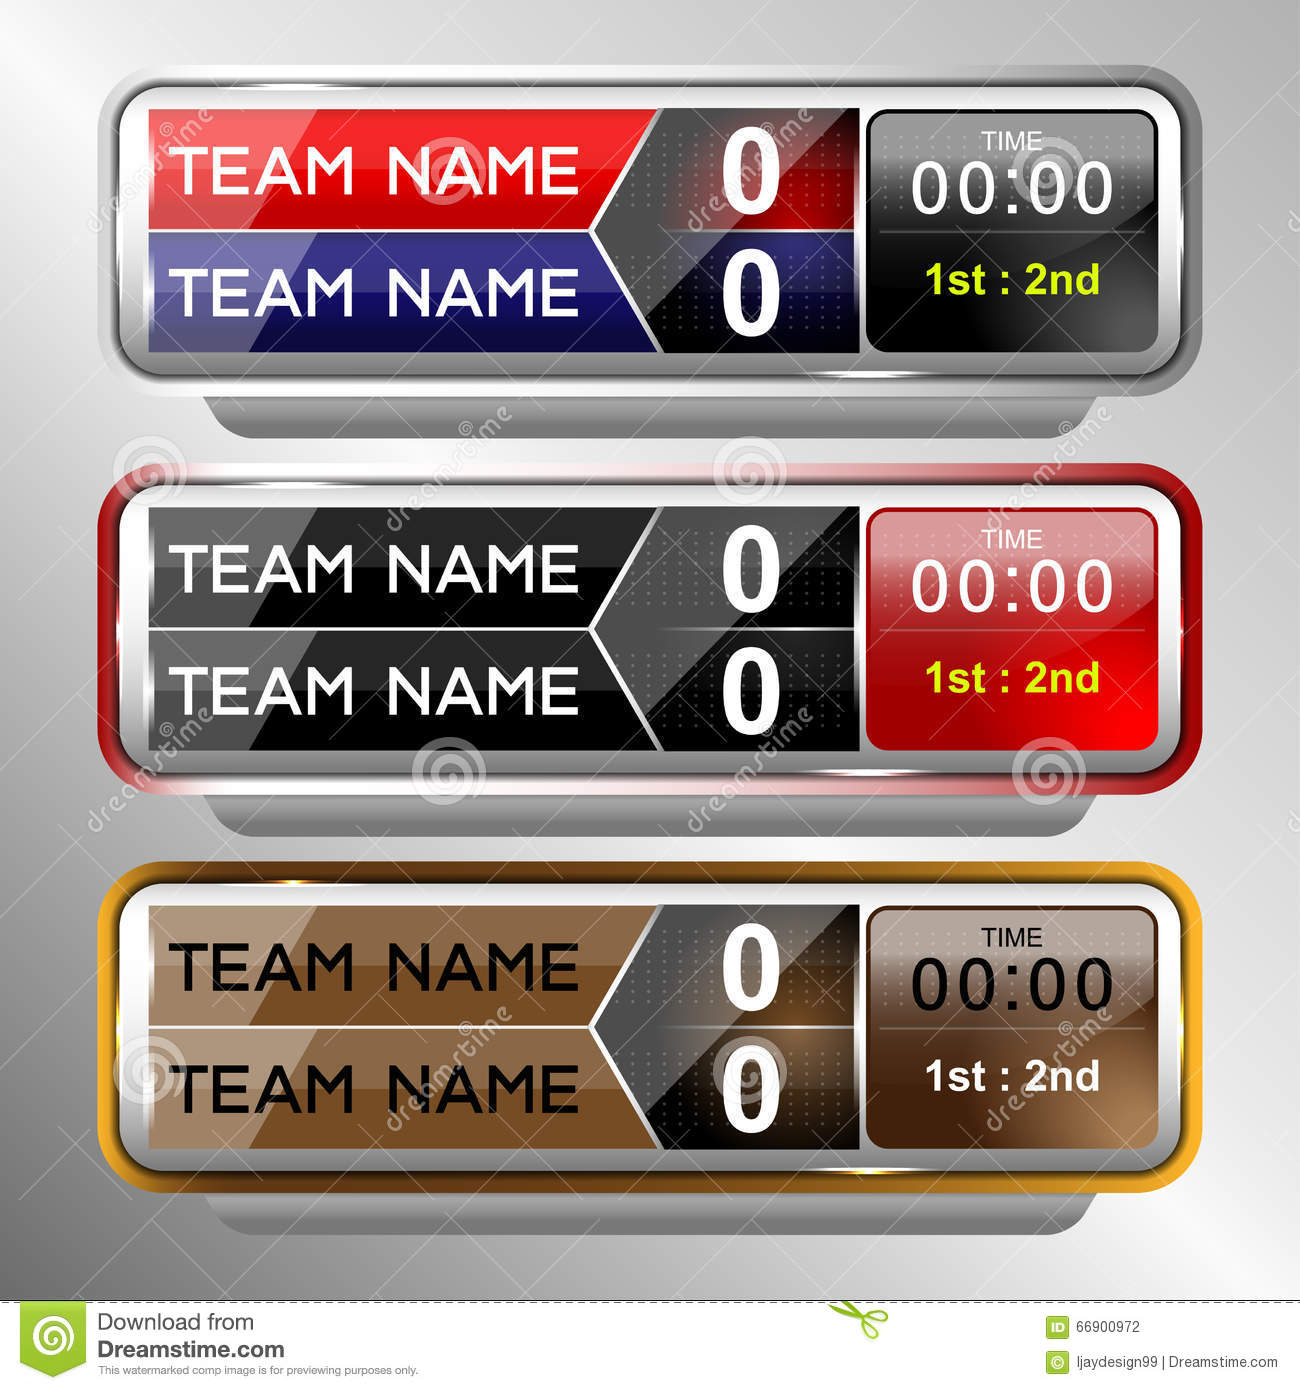 Icons Scoreboard Template Stock Vector - Image: 66900972